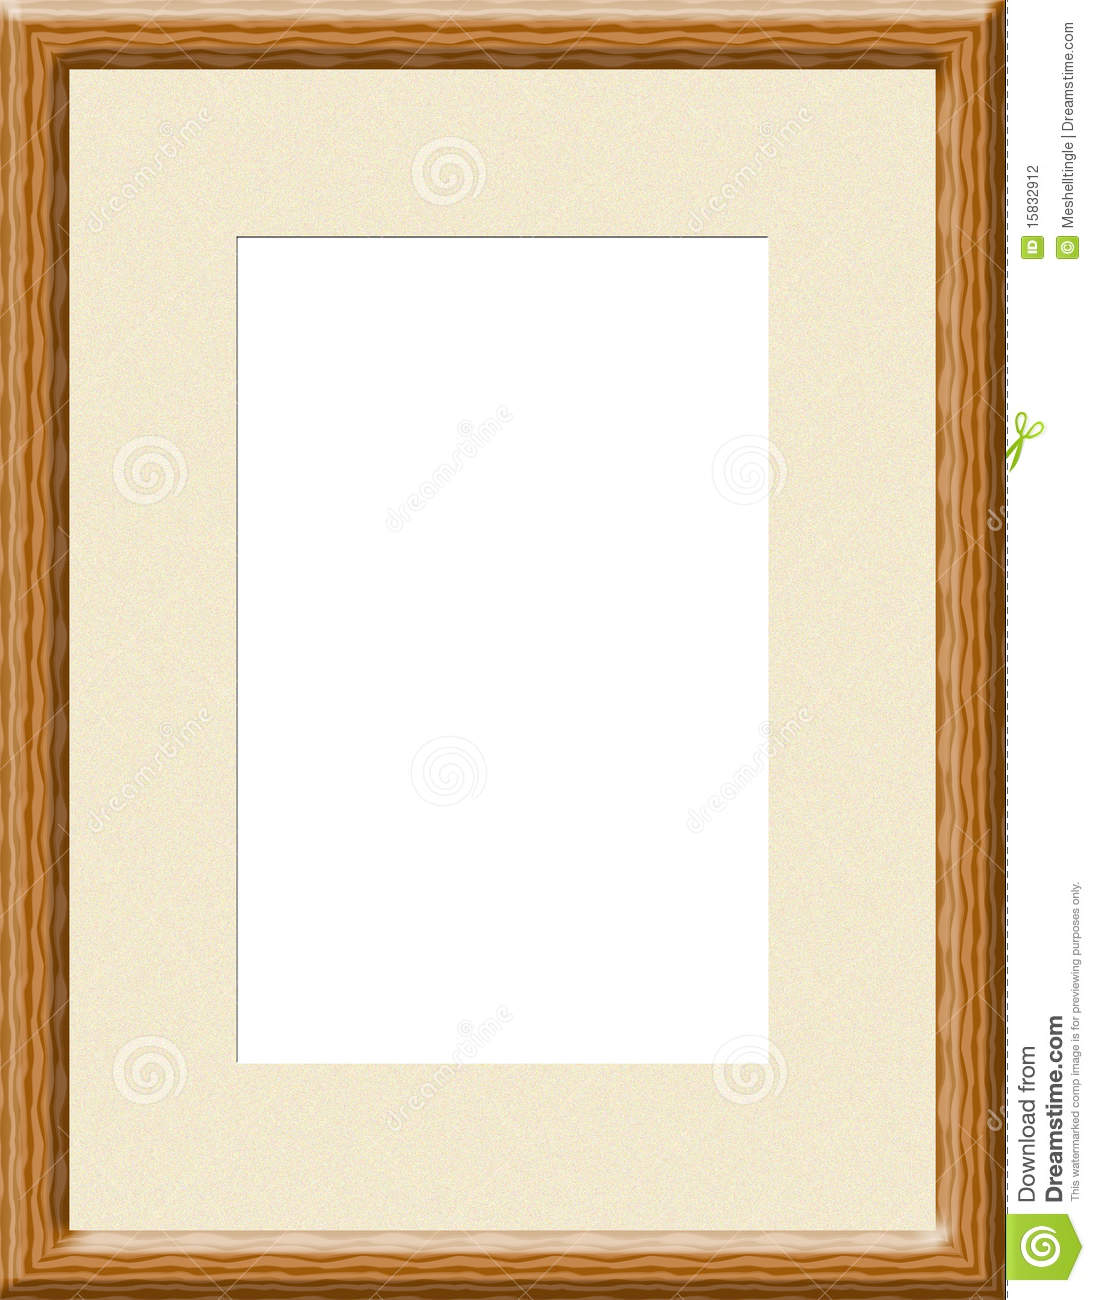 light brown wooden frame